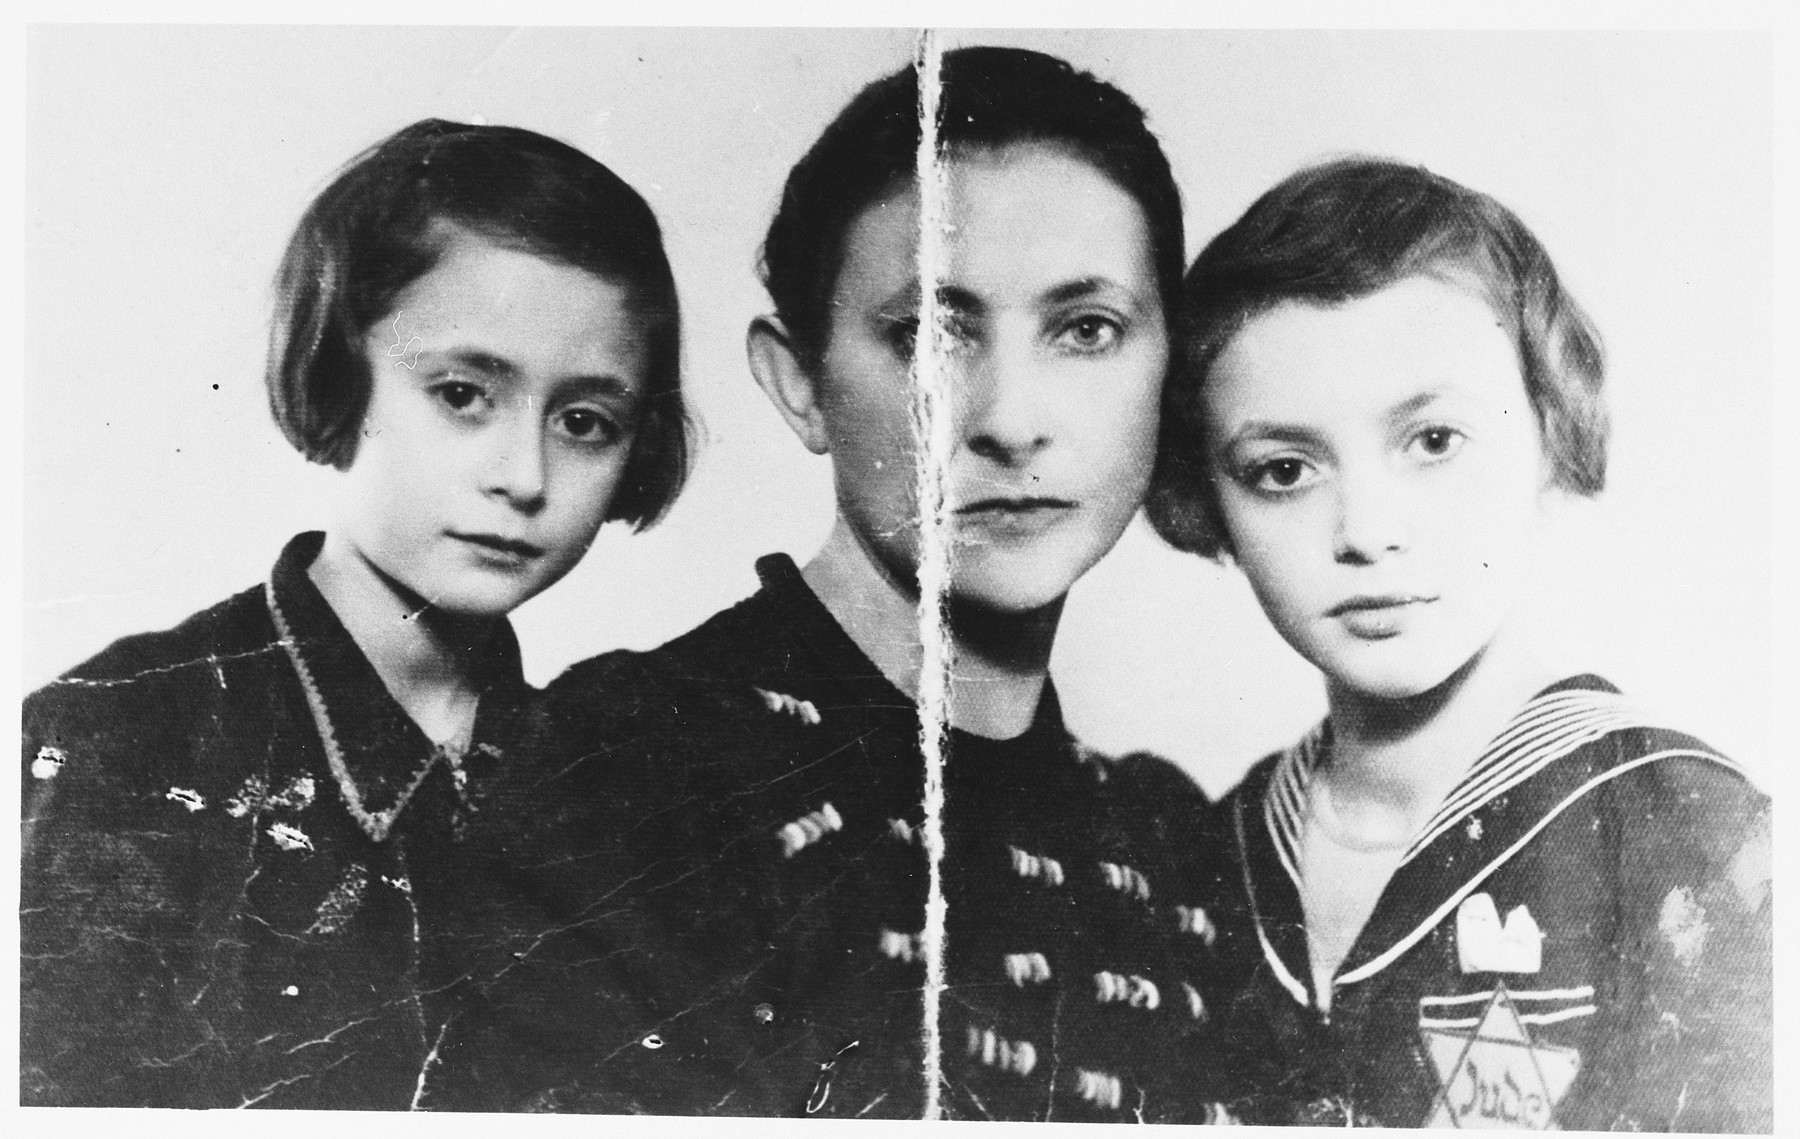 Studio portrait of a Jewish family in Jaworzno in German-occupied Poland.  Pictured are Esther (Halman) Hirschberg and her two daughters. Leah Hirschberg is pictured on the right wearing a Jewish badge.  The photo was taken shortly before they were deported to Auschwitz where they were killed by the Germans.  Esther's husband, Mailoch Hirschberg, kept the photograph folded in two and hidden in his shoe until the end of the war.  Esther was the youngest sister of Felicja (Halman) Lieberfreund.